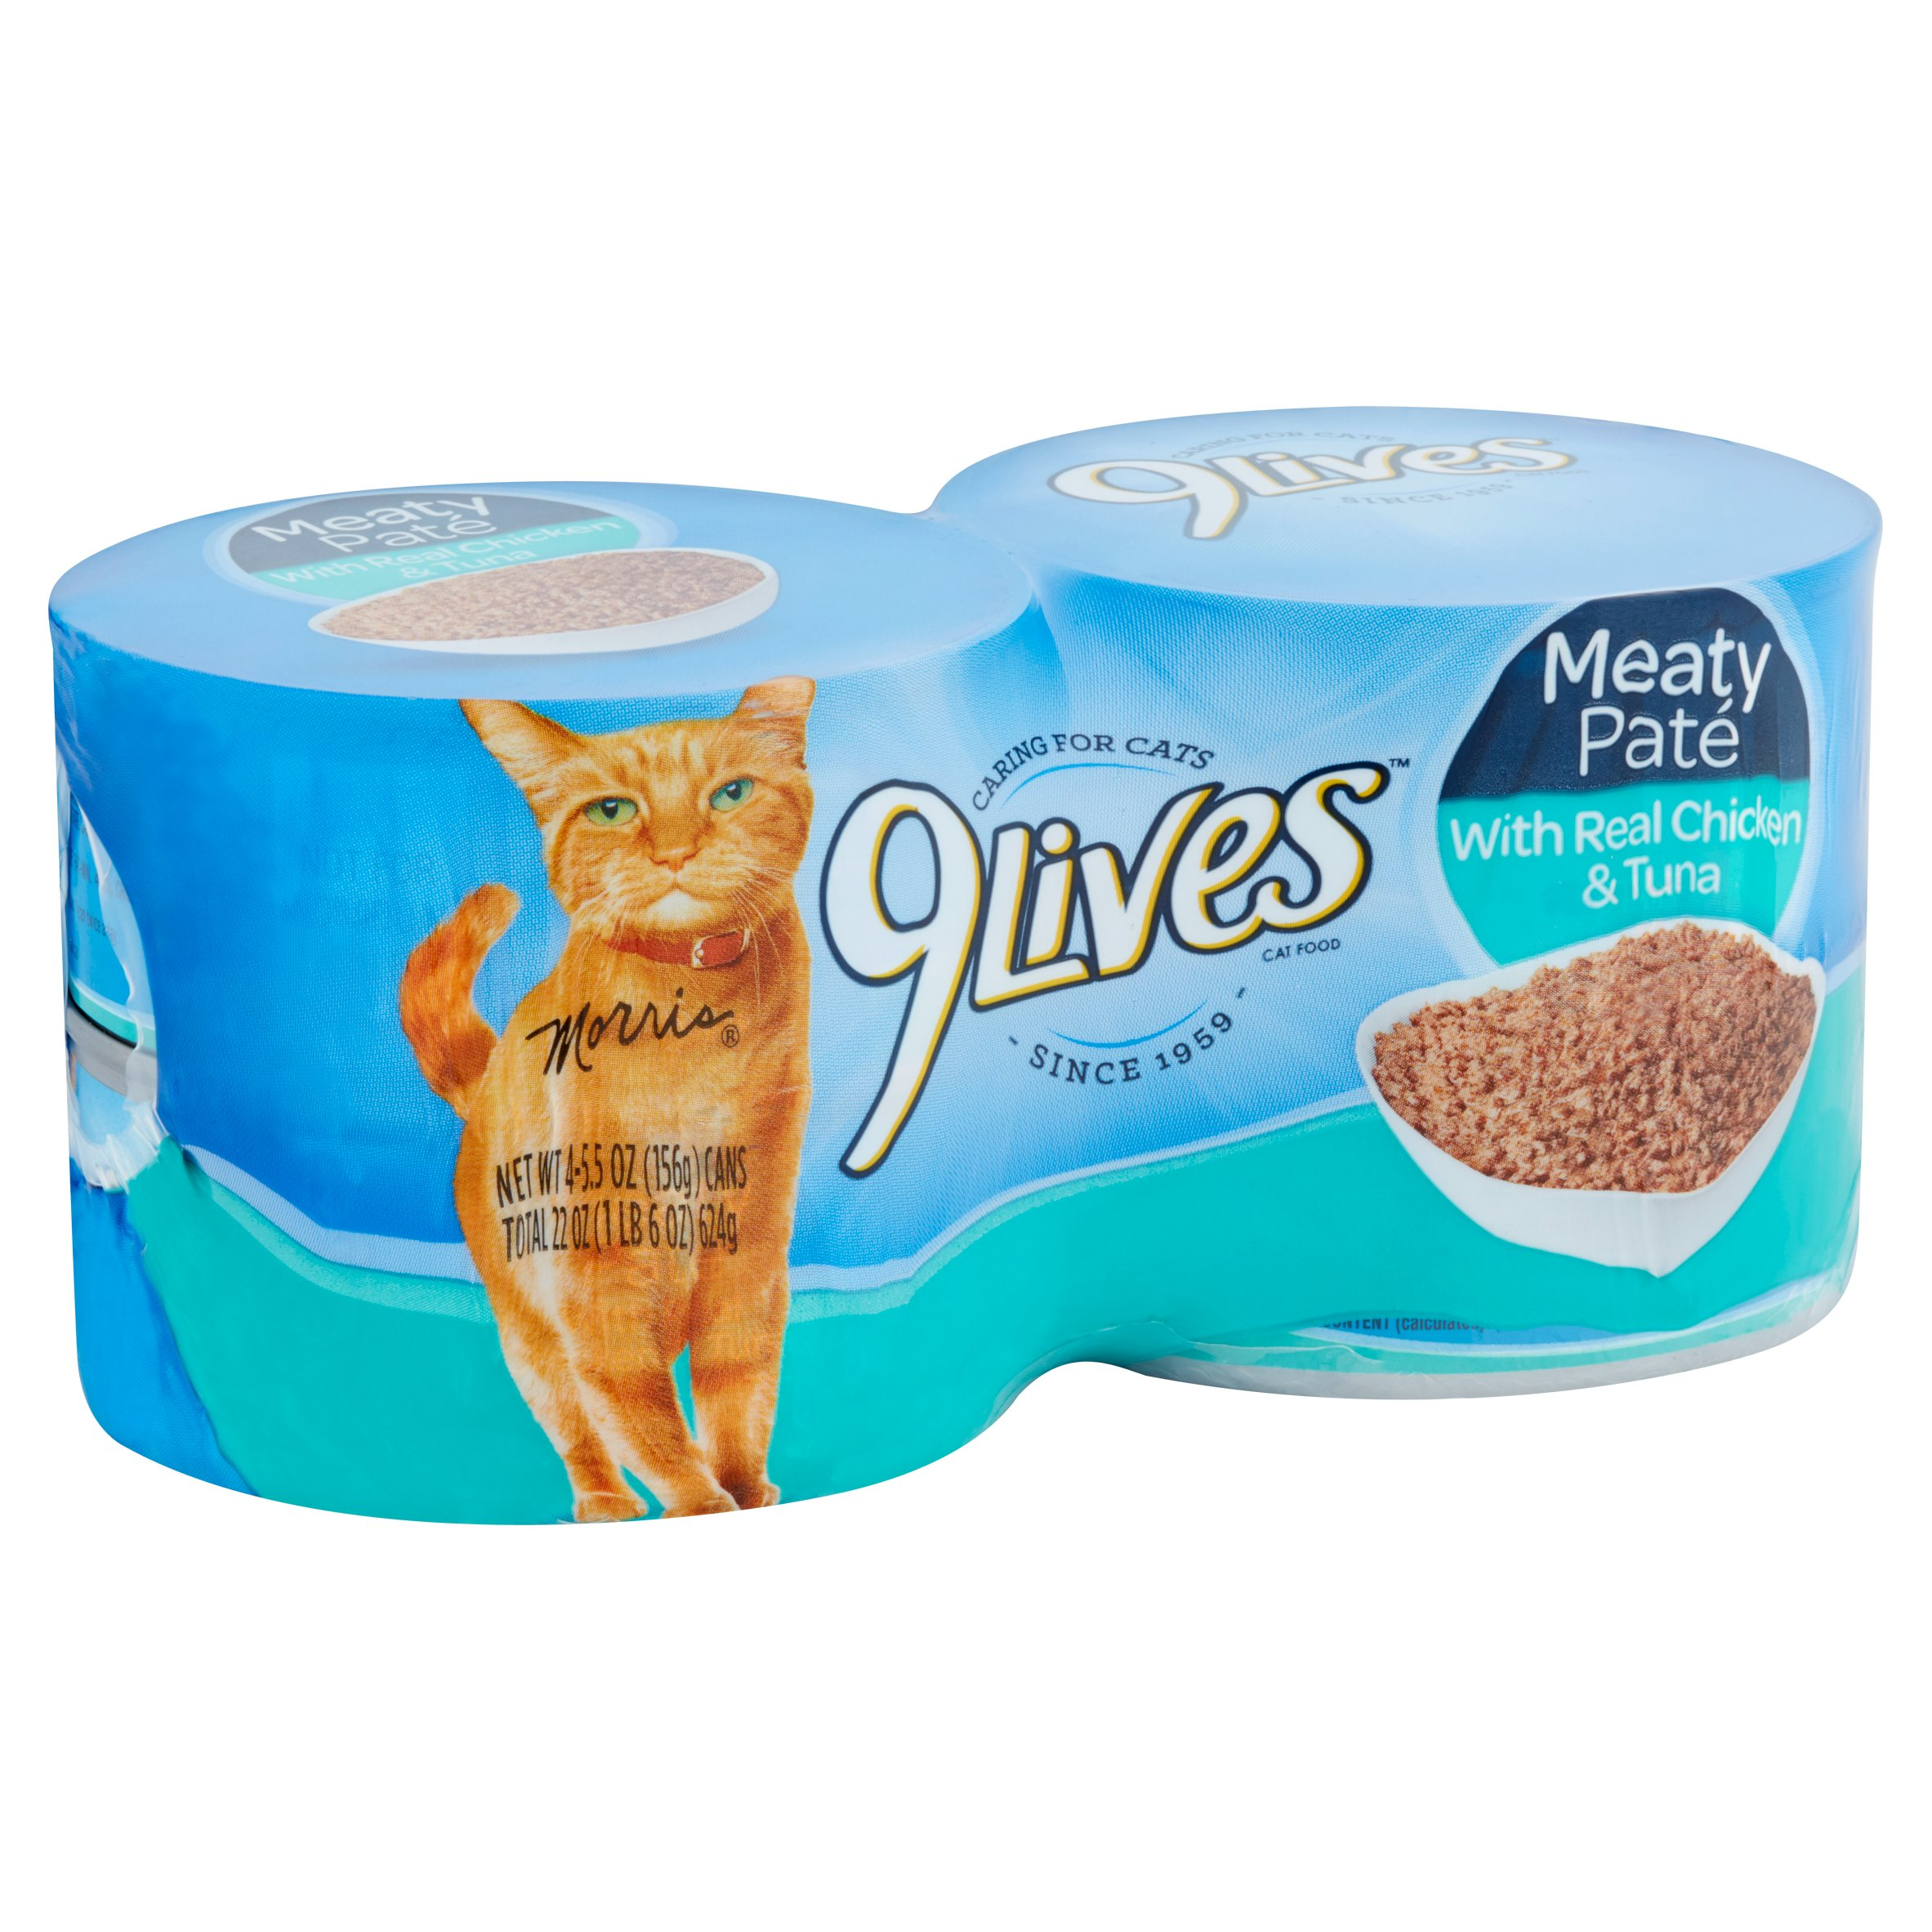 Image of 9Lives Daily Essentials Chicken & Tuna All Stages Wet Cat Food, 5.5 Oz, 4 Ct